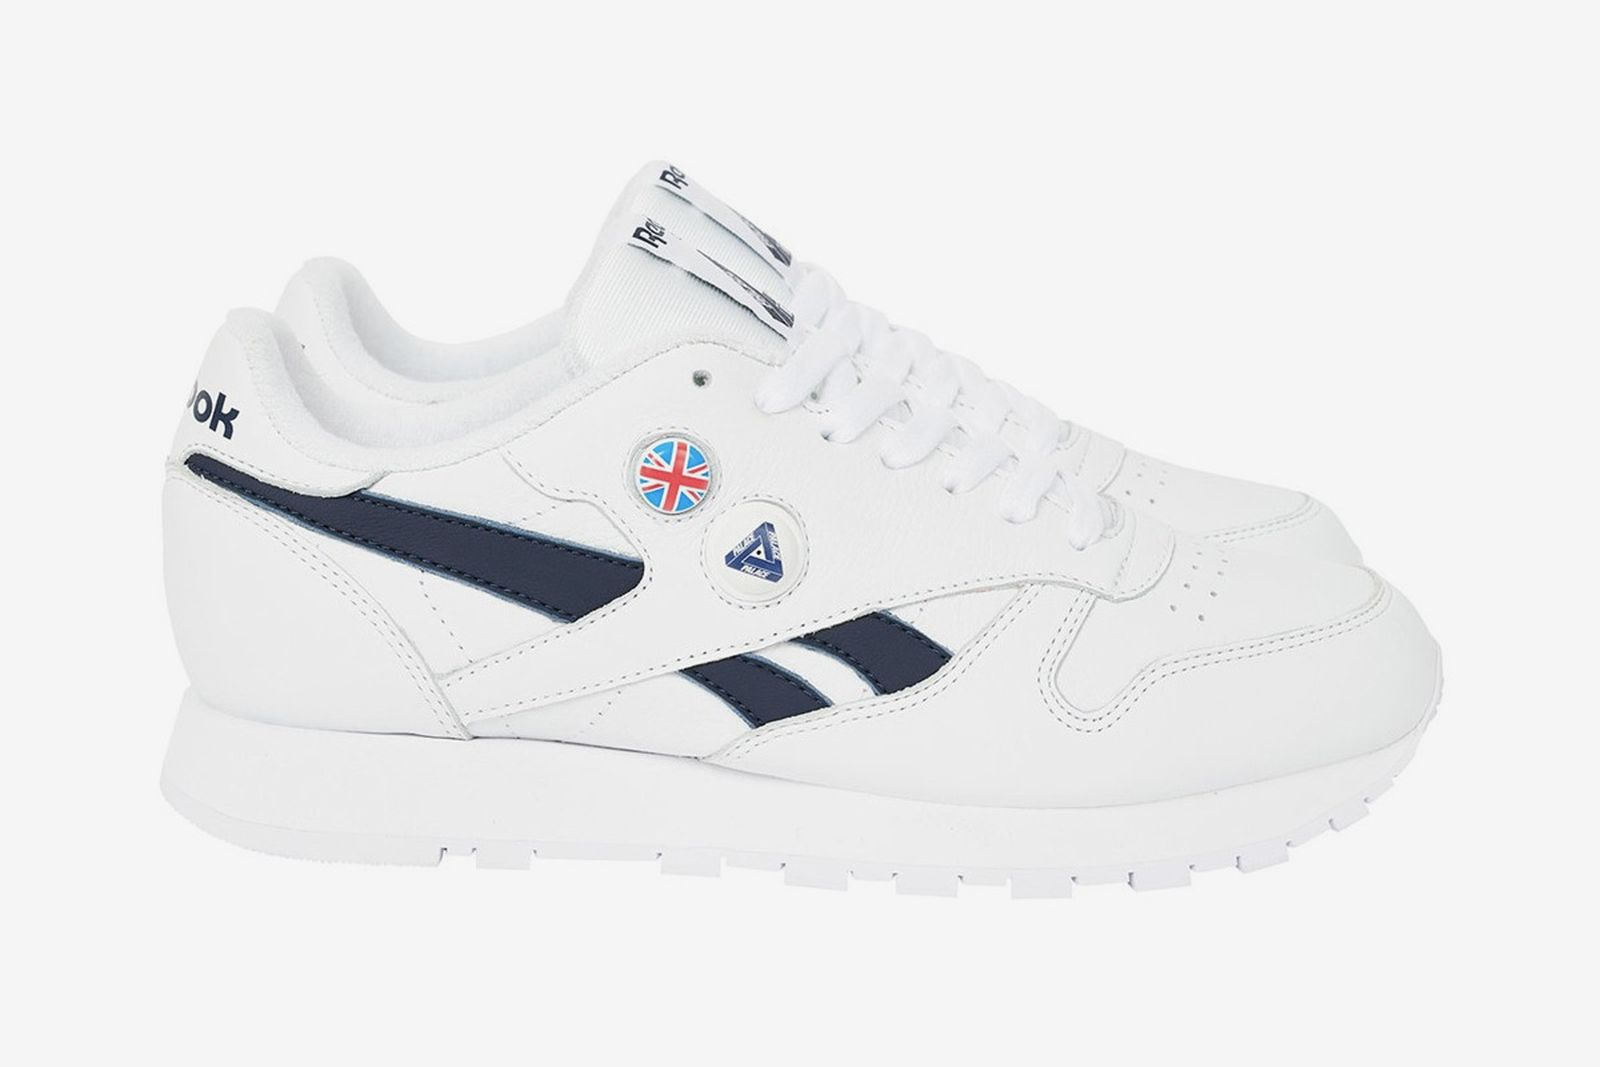 palace-reebok-classic-leather-pump-release-date-price-03